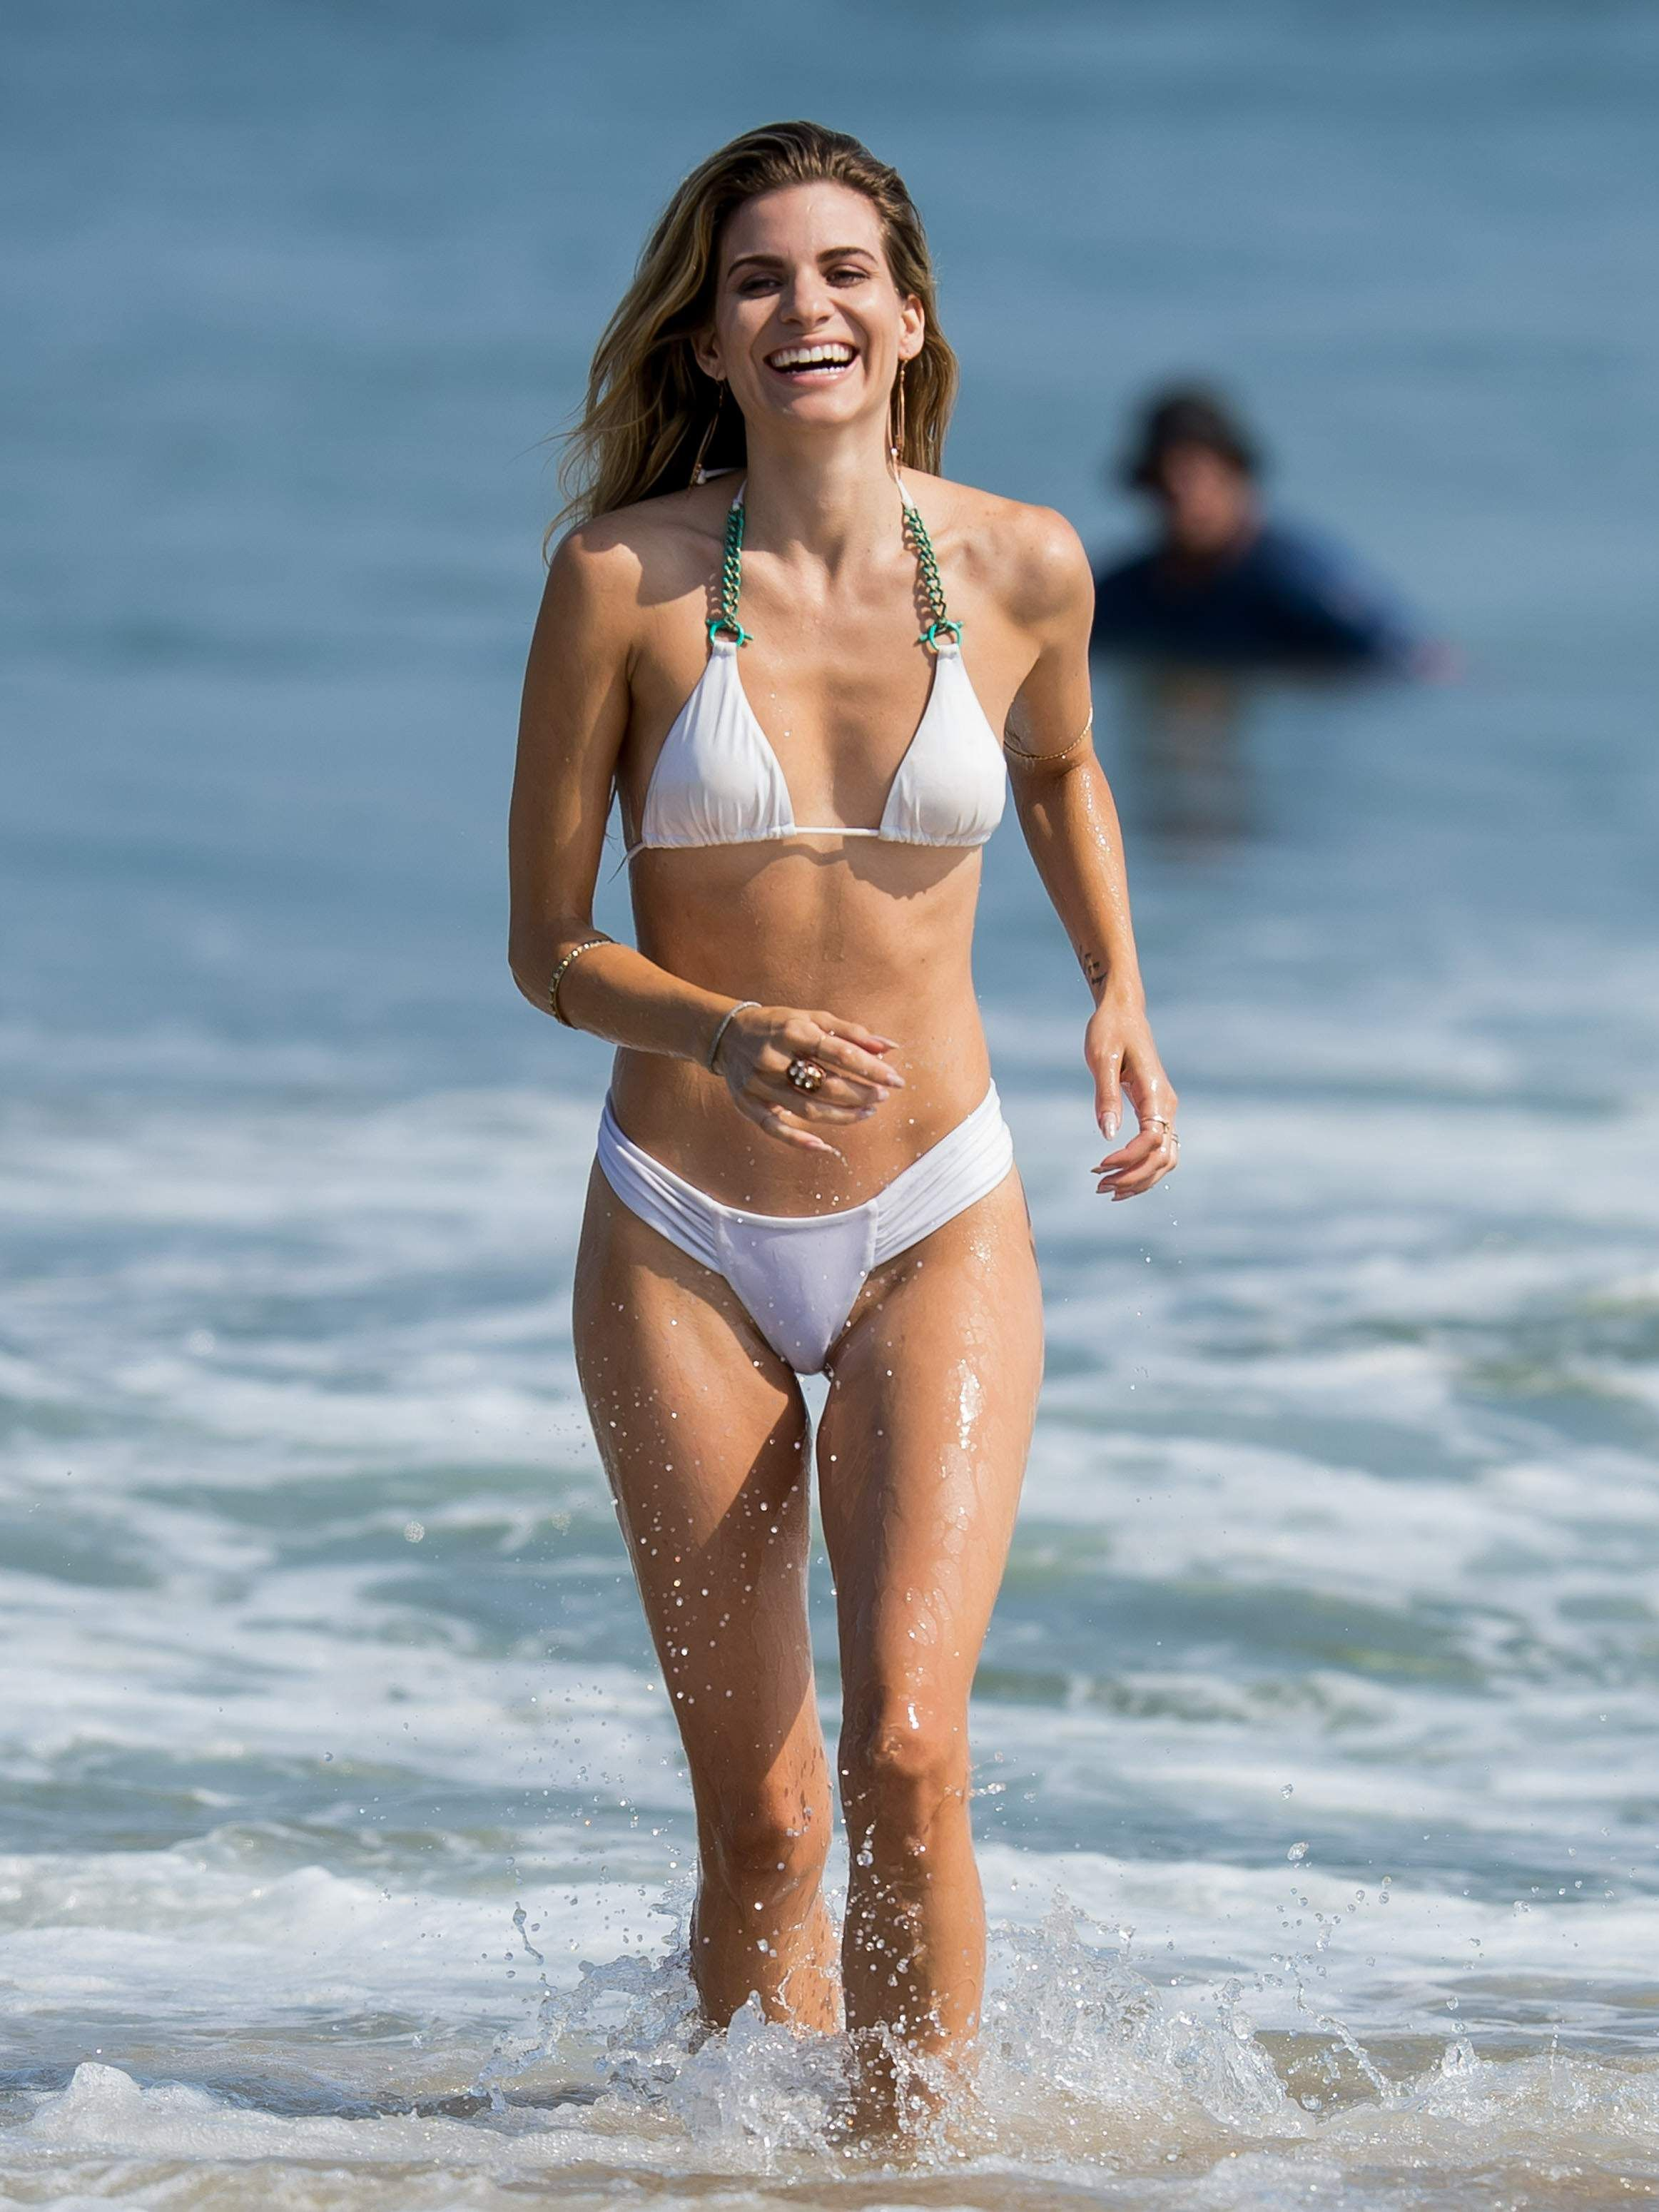 Celebrity Rachel McCord nudes (46 foto and video), Ass, Cleavage, Instagram, swimsuit 2006